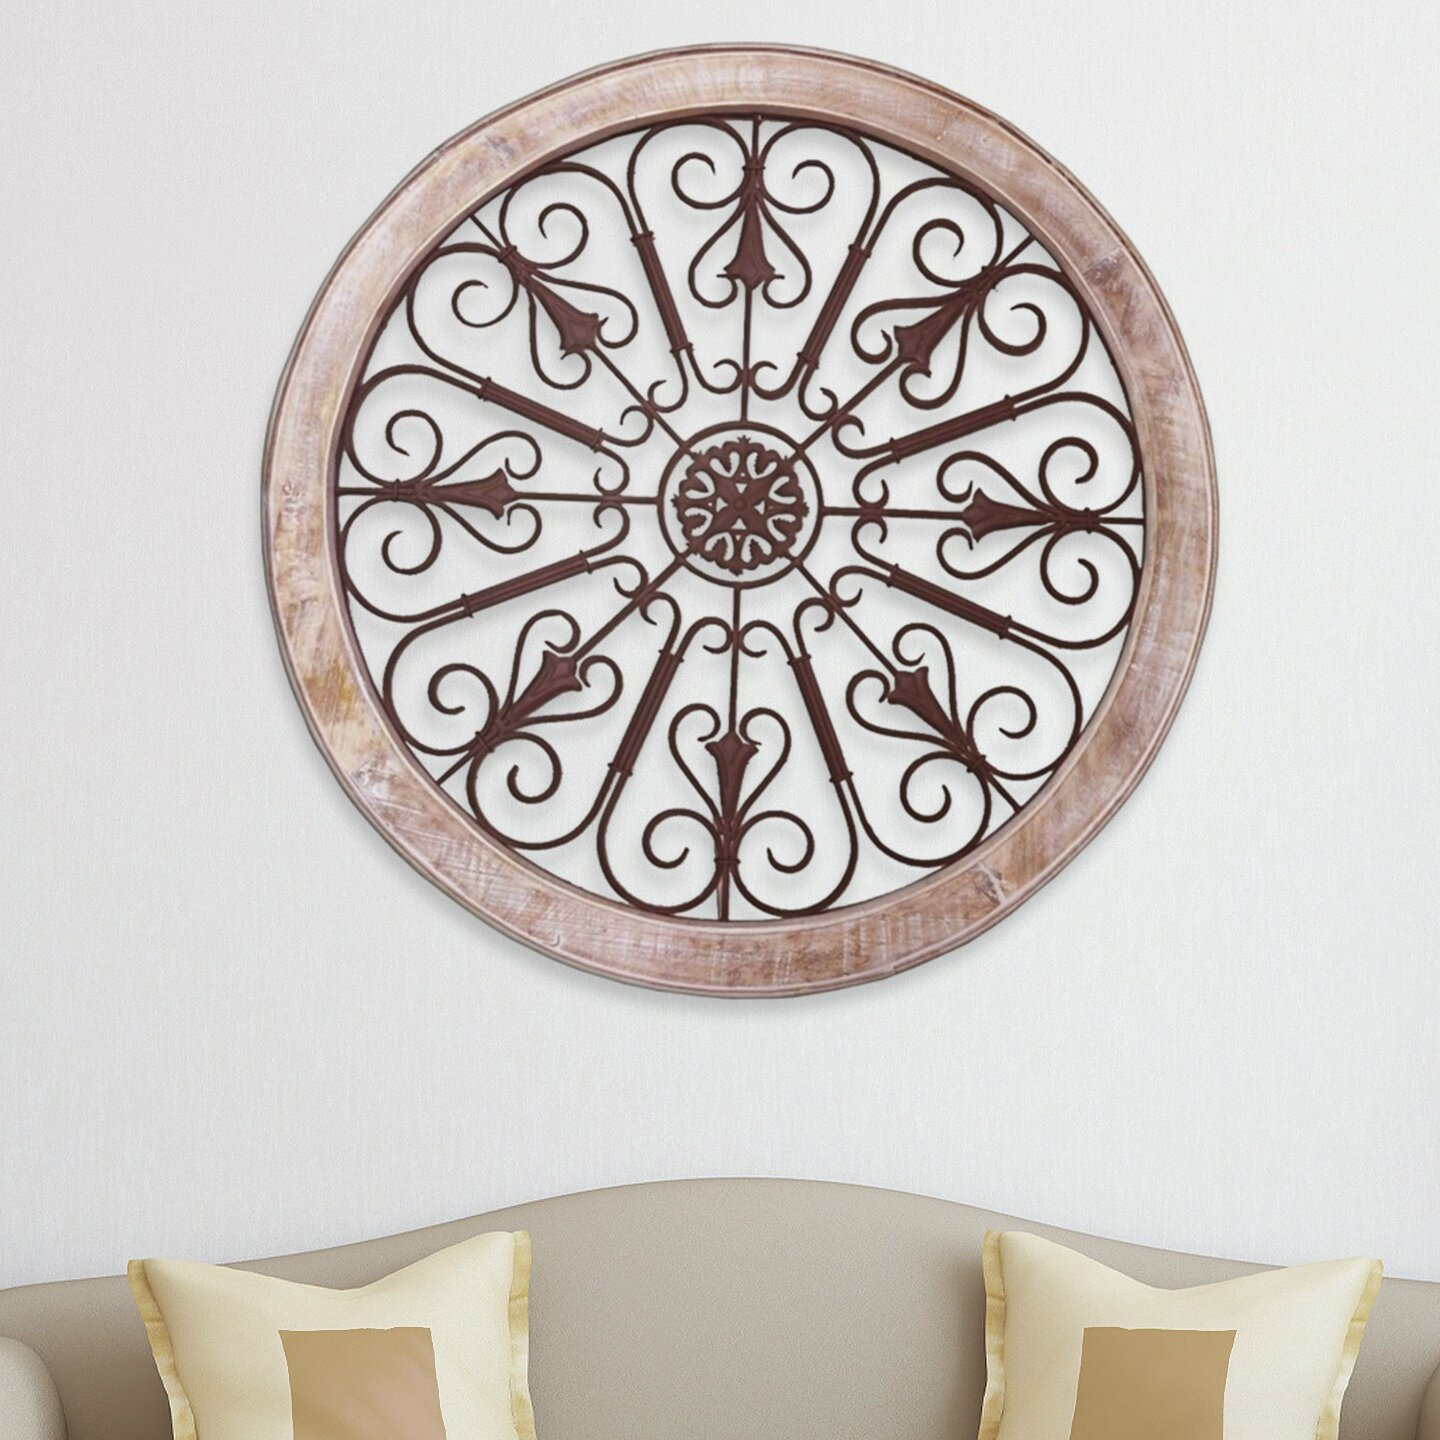 Round Wall Decor | Wayfair Within Contemporary Abstract Round Wall Decor (Gallery 2 of 30)